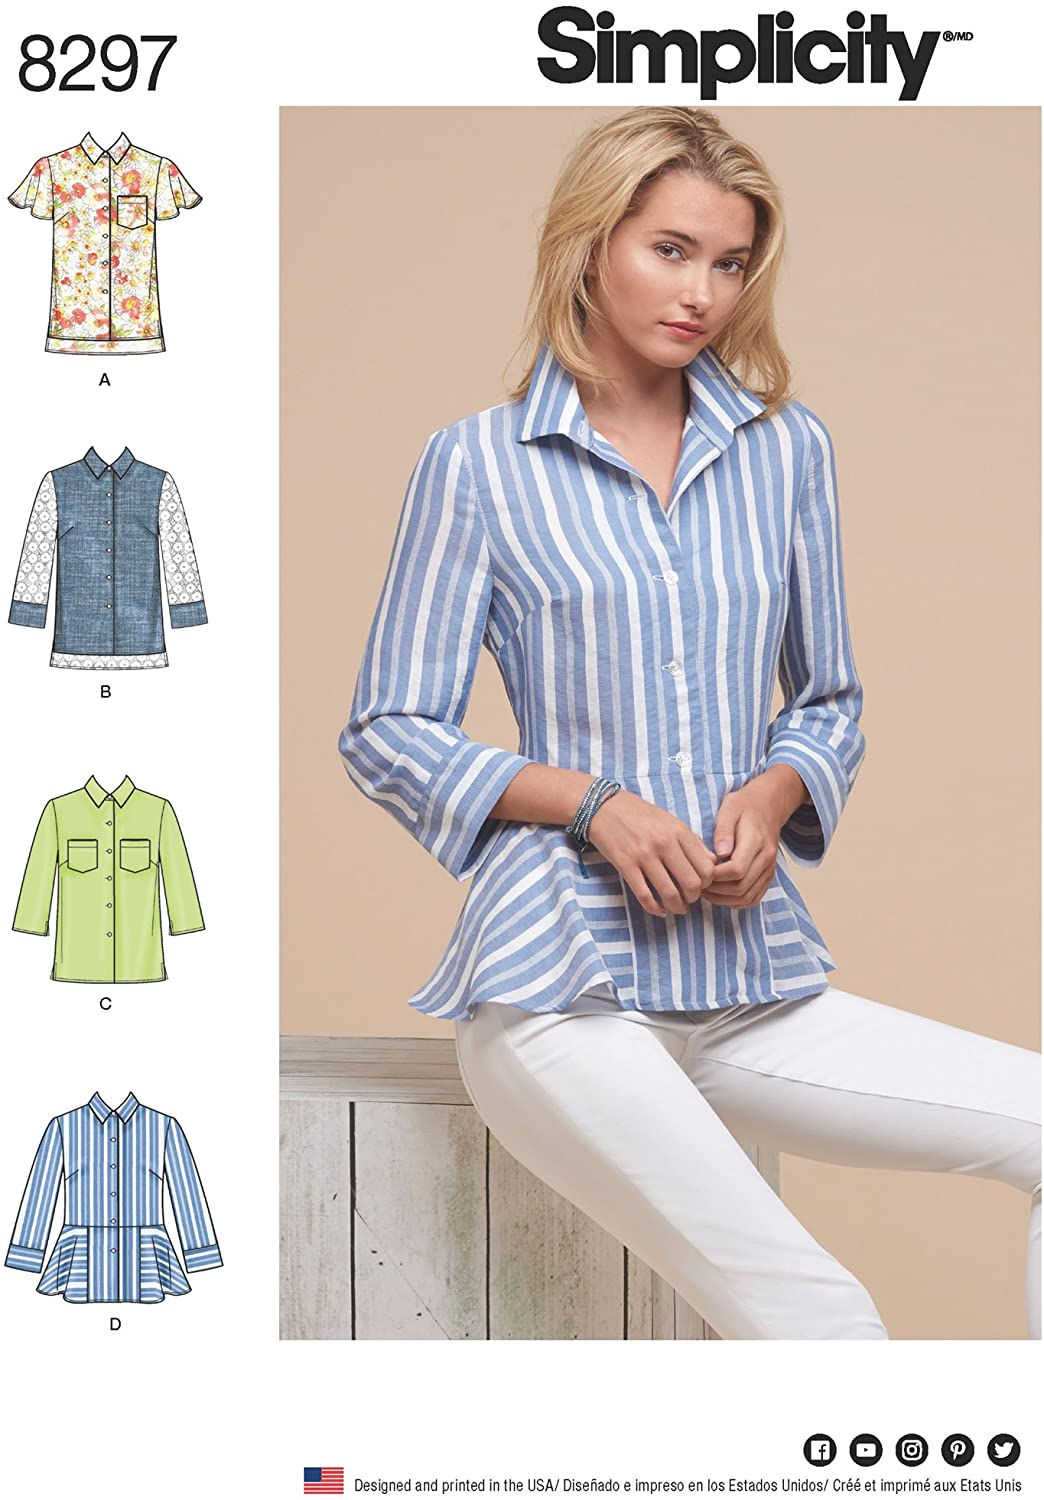 Simplicity Womens Button-Up Blouse Sewing Patterns, Sizes 14-22